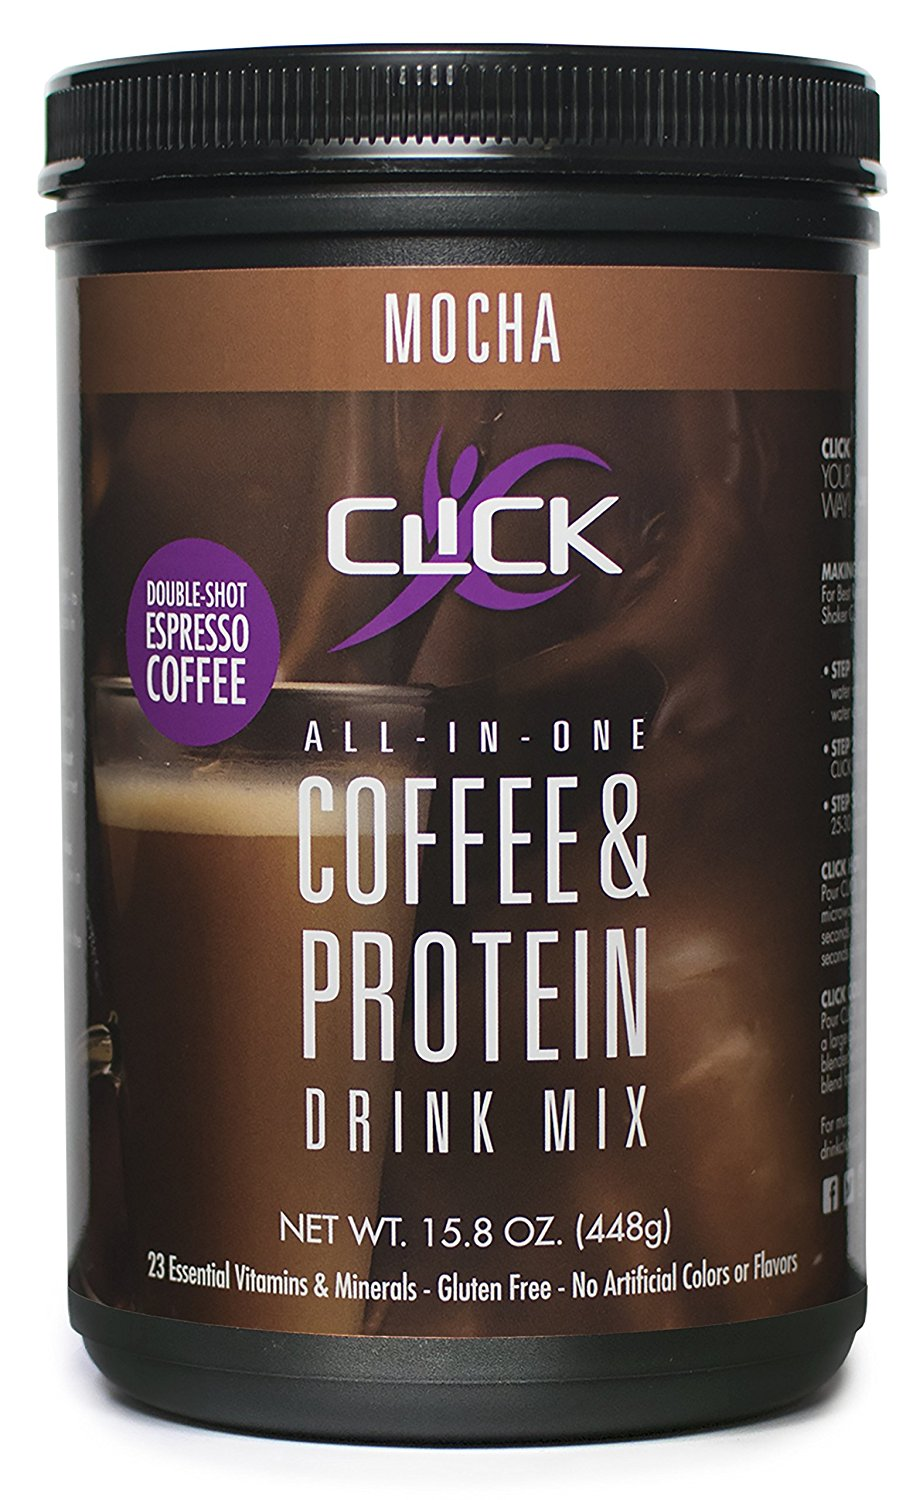 Protein powder made with real espresso coffee